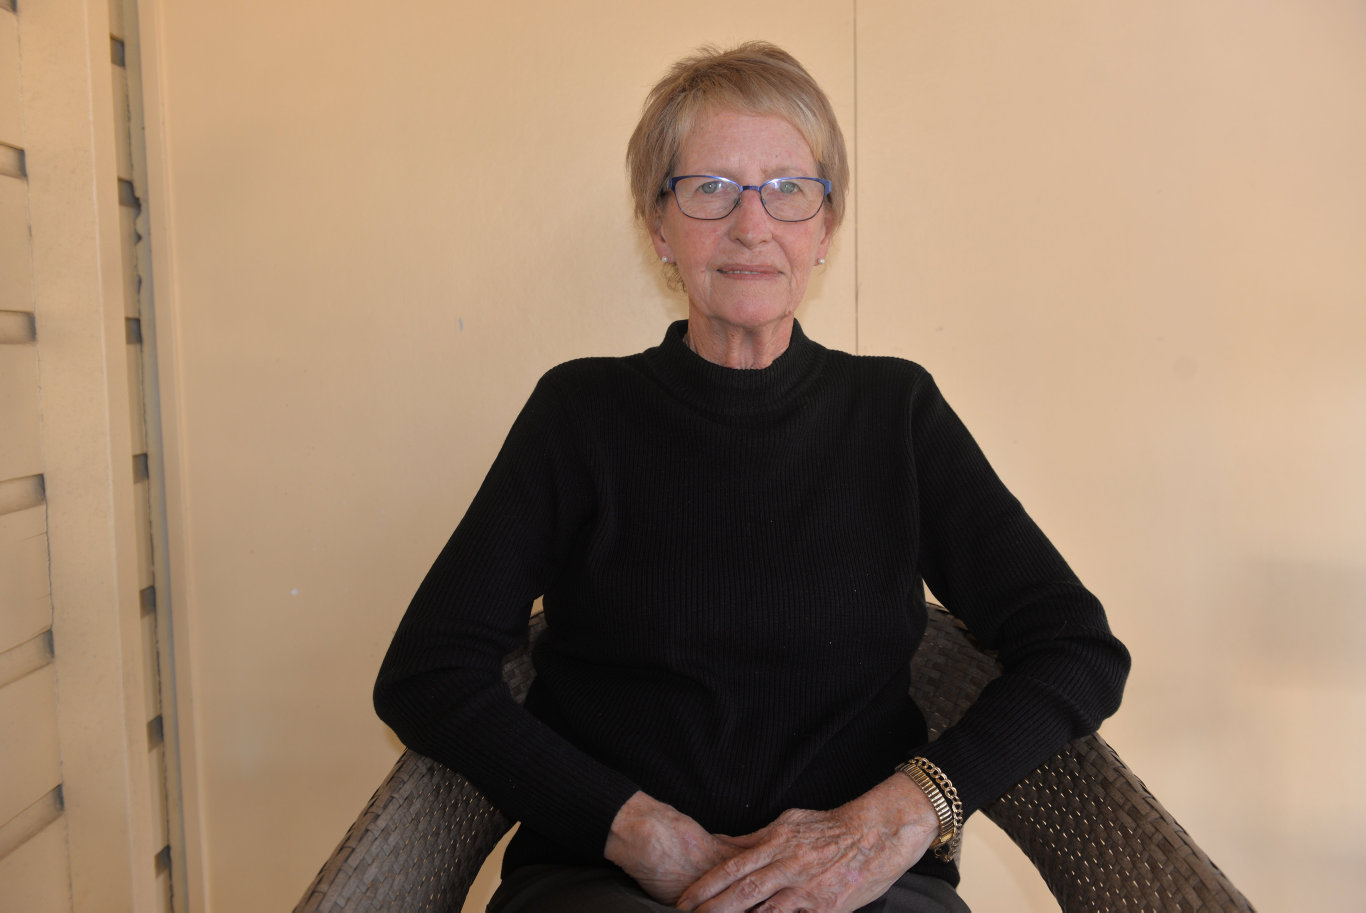 VIOLATION IN OWN HOME: Bundaberg local, Cheryl Johnson has not been able to spend a night at her home since intruders have accessed the property four times.